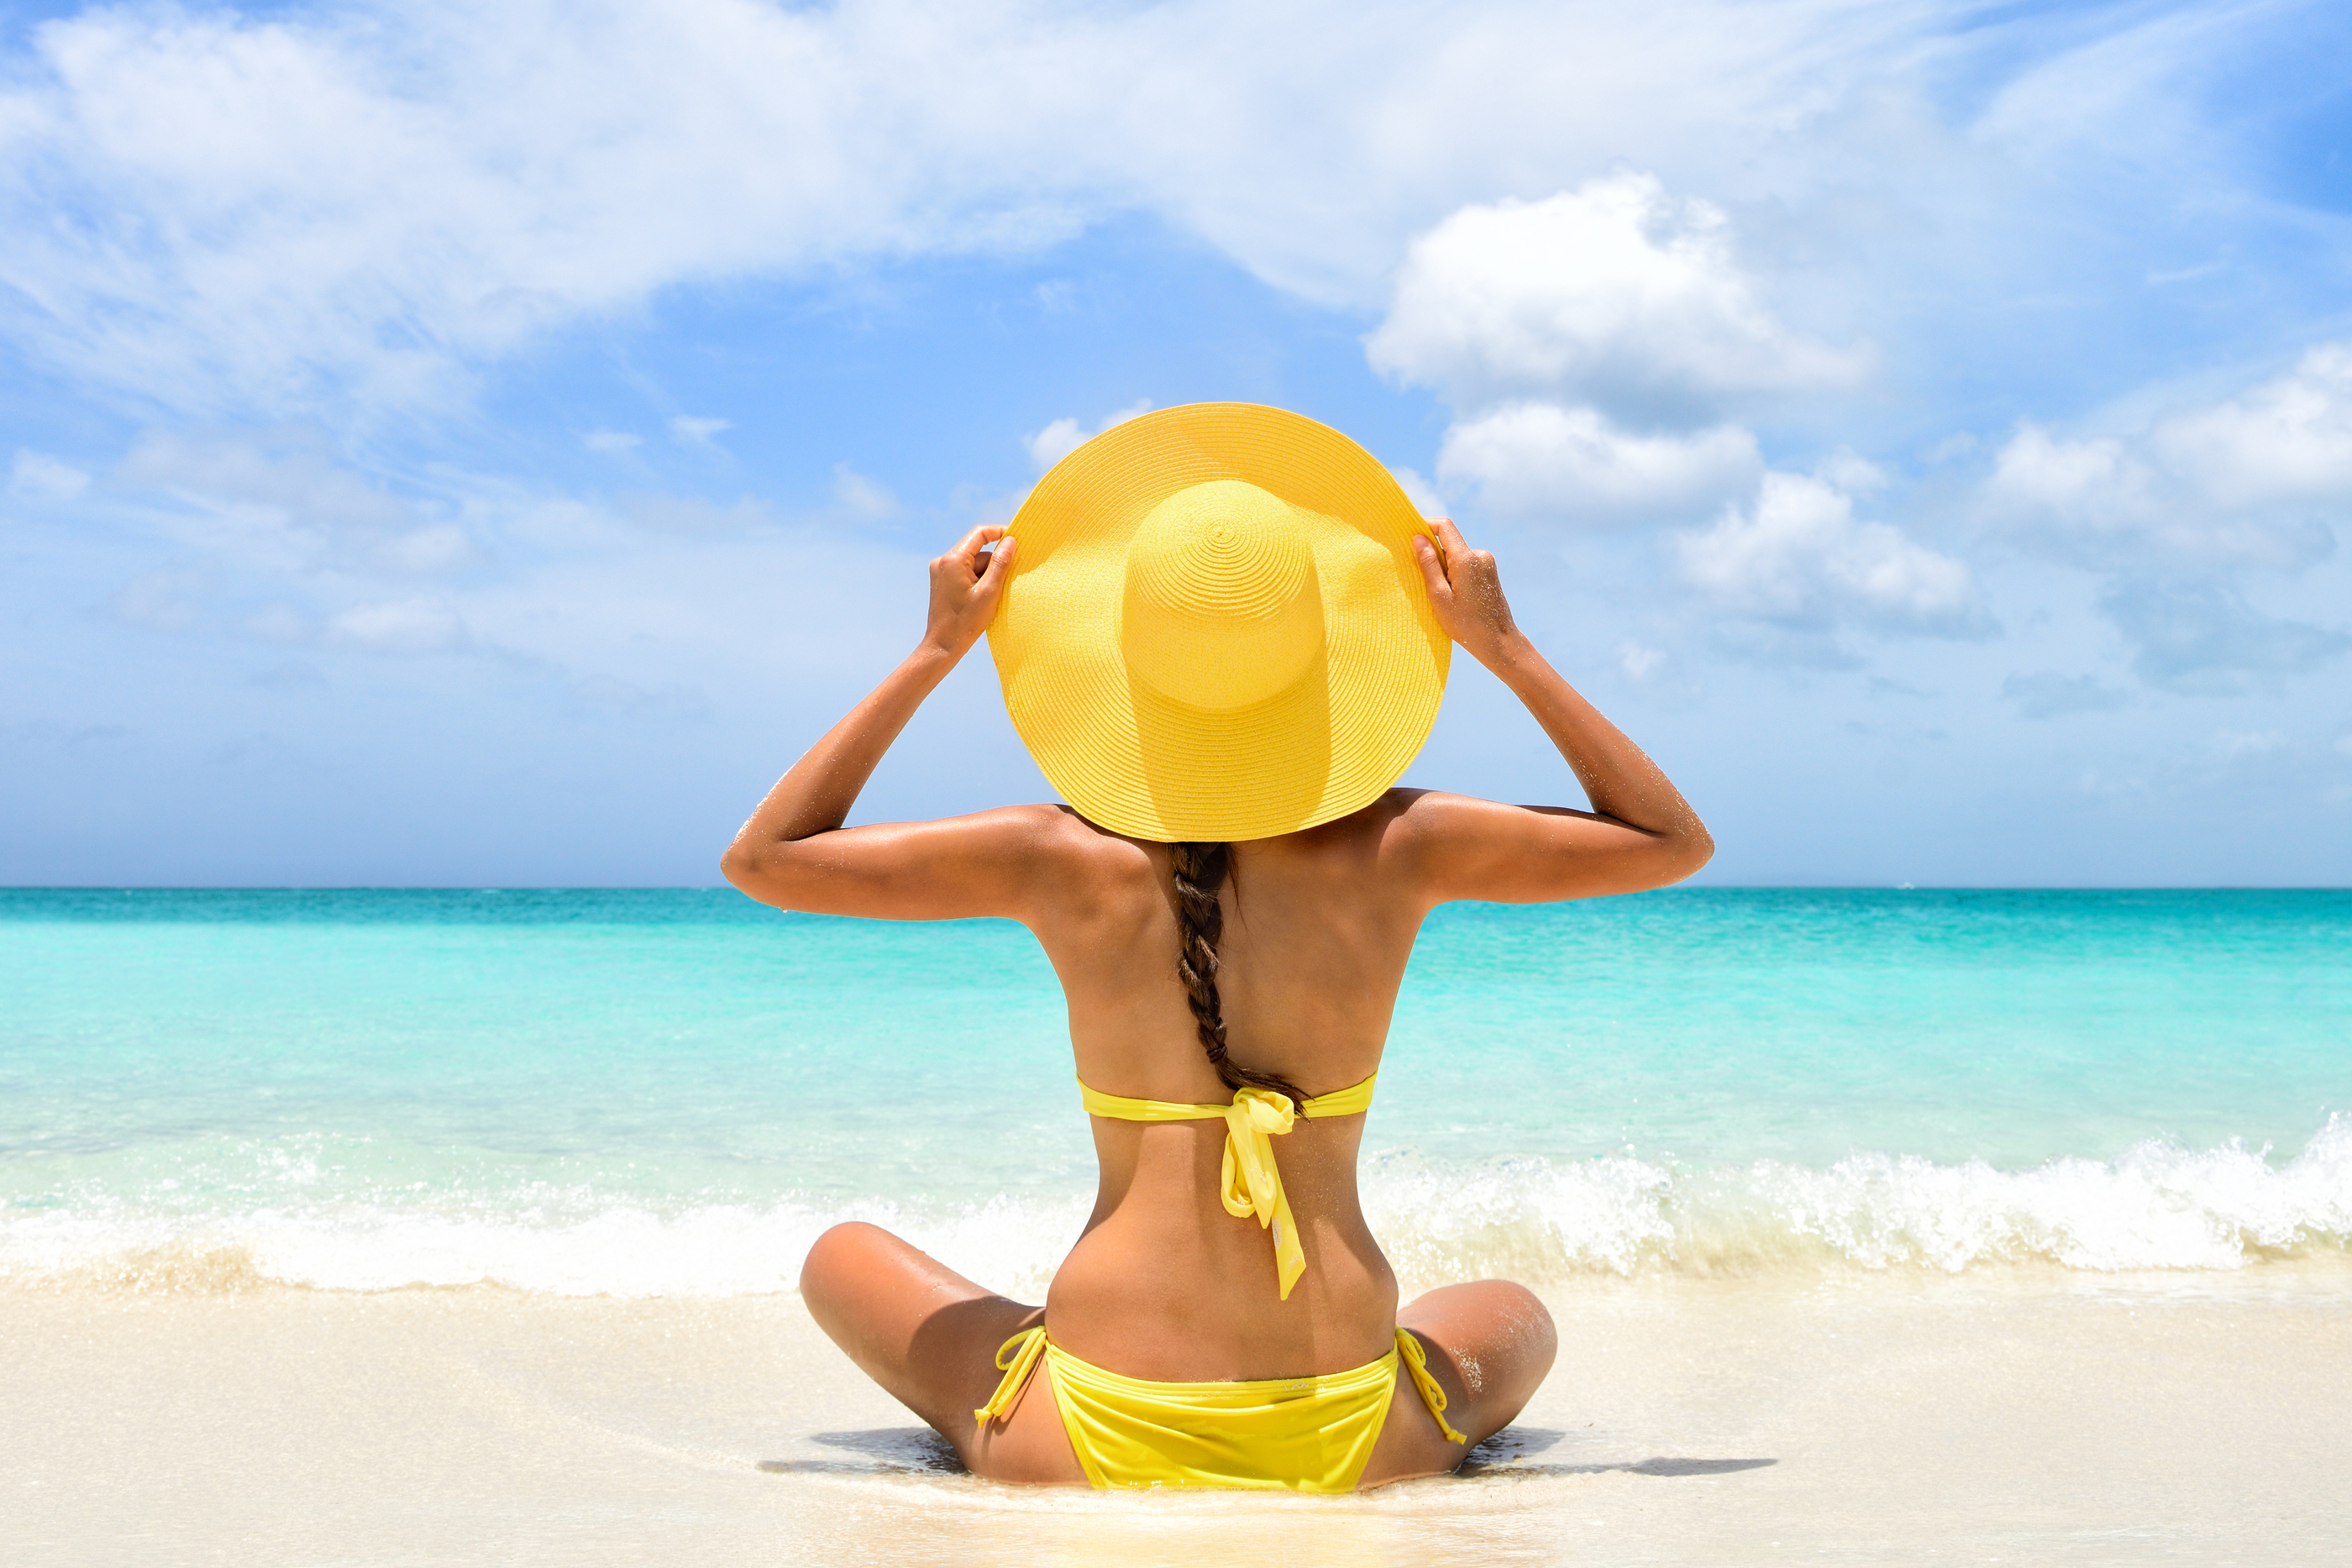 Happy carefree woman relaxing sitting in sand enjoying tropical beach destination. Perfect paradise